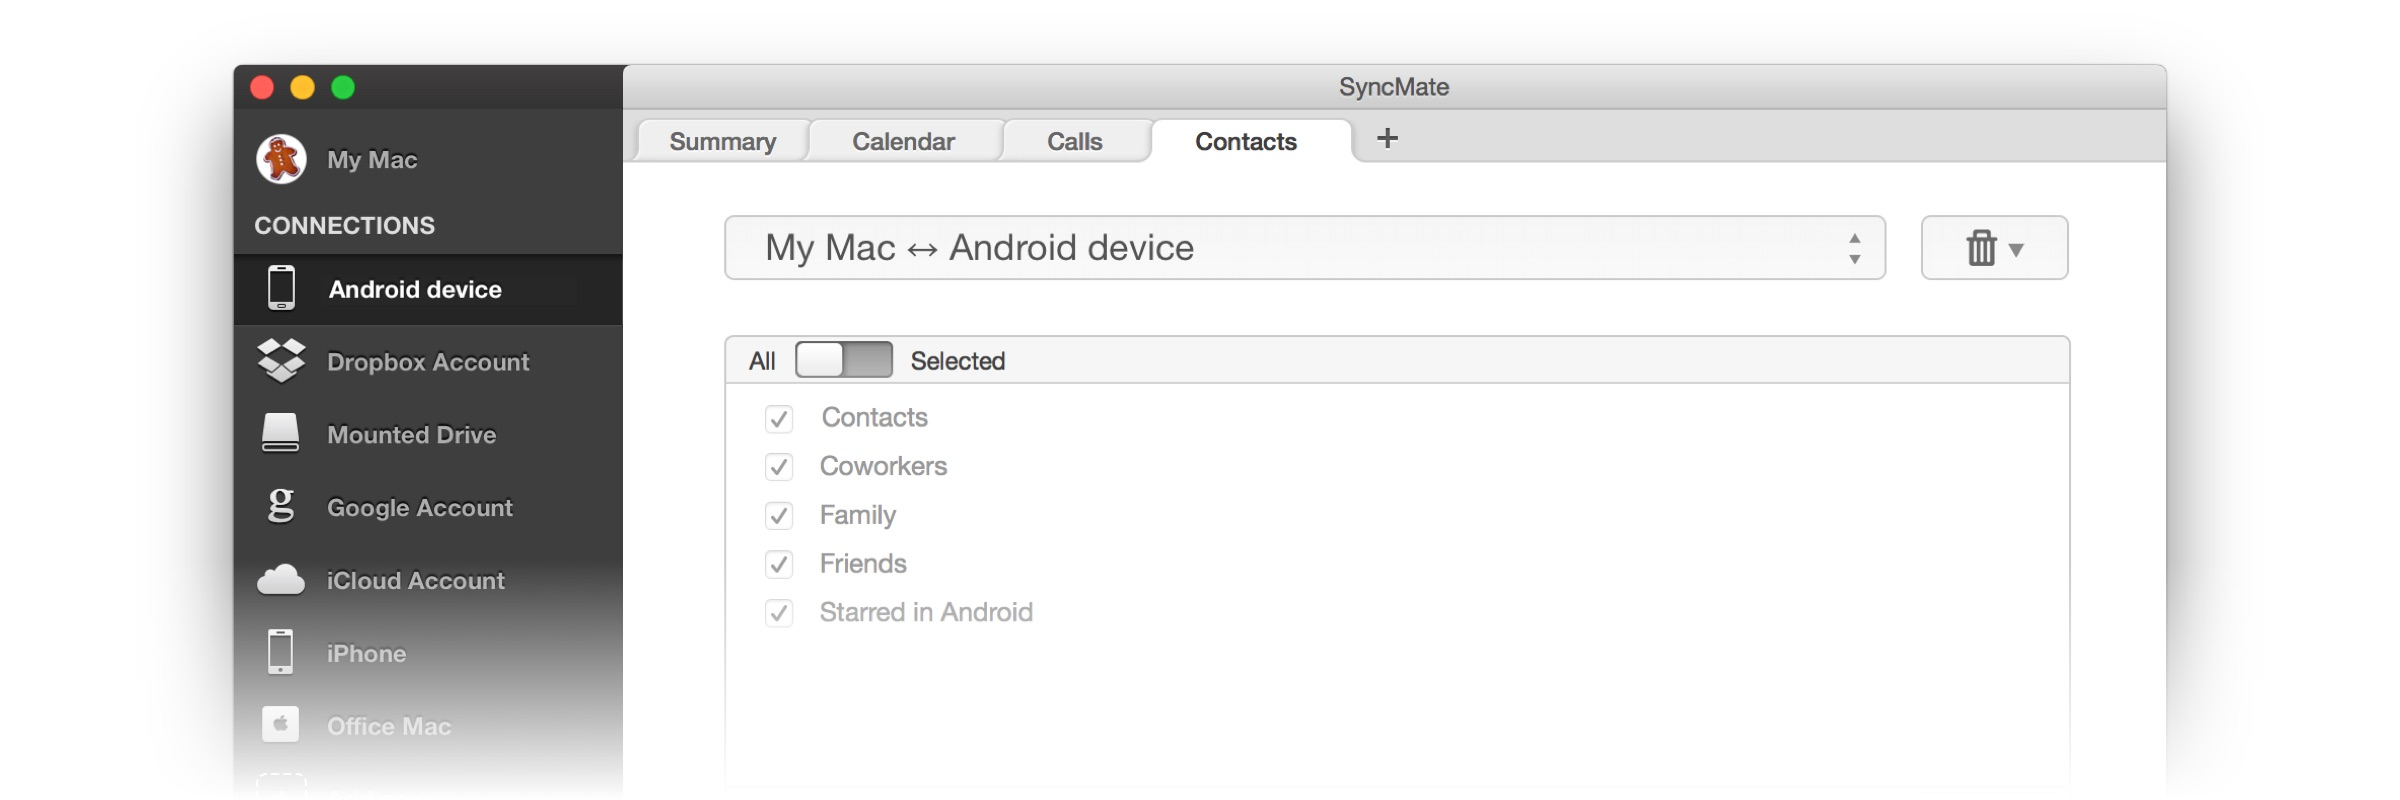 Syncmate Review - Easily Sync Android to iPhone 3